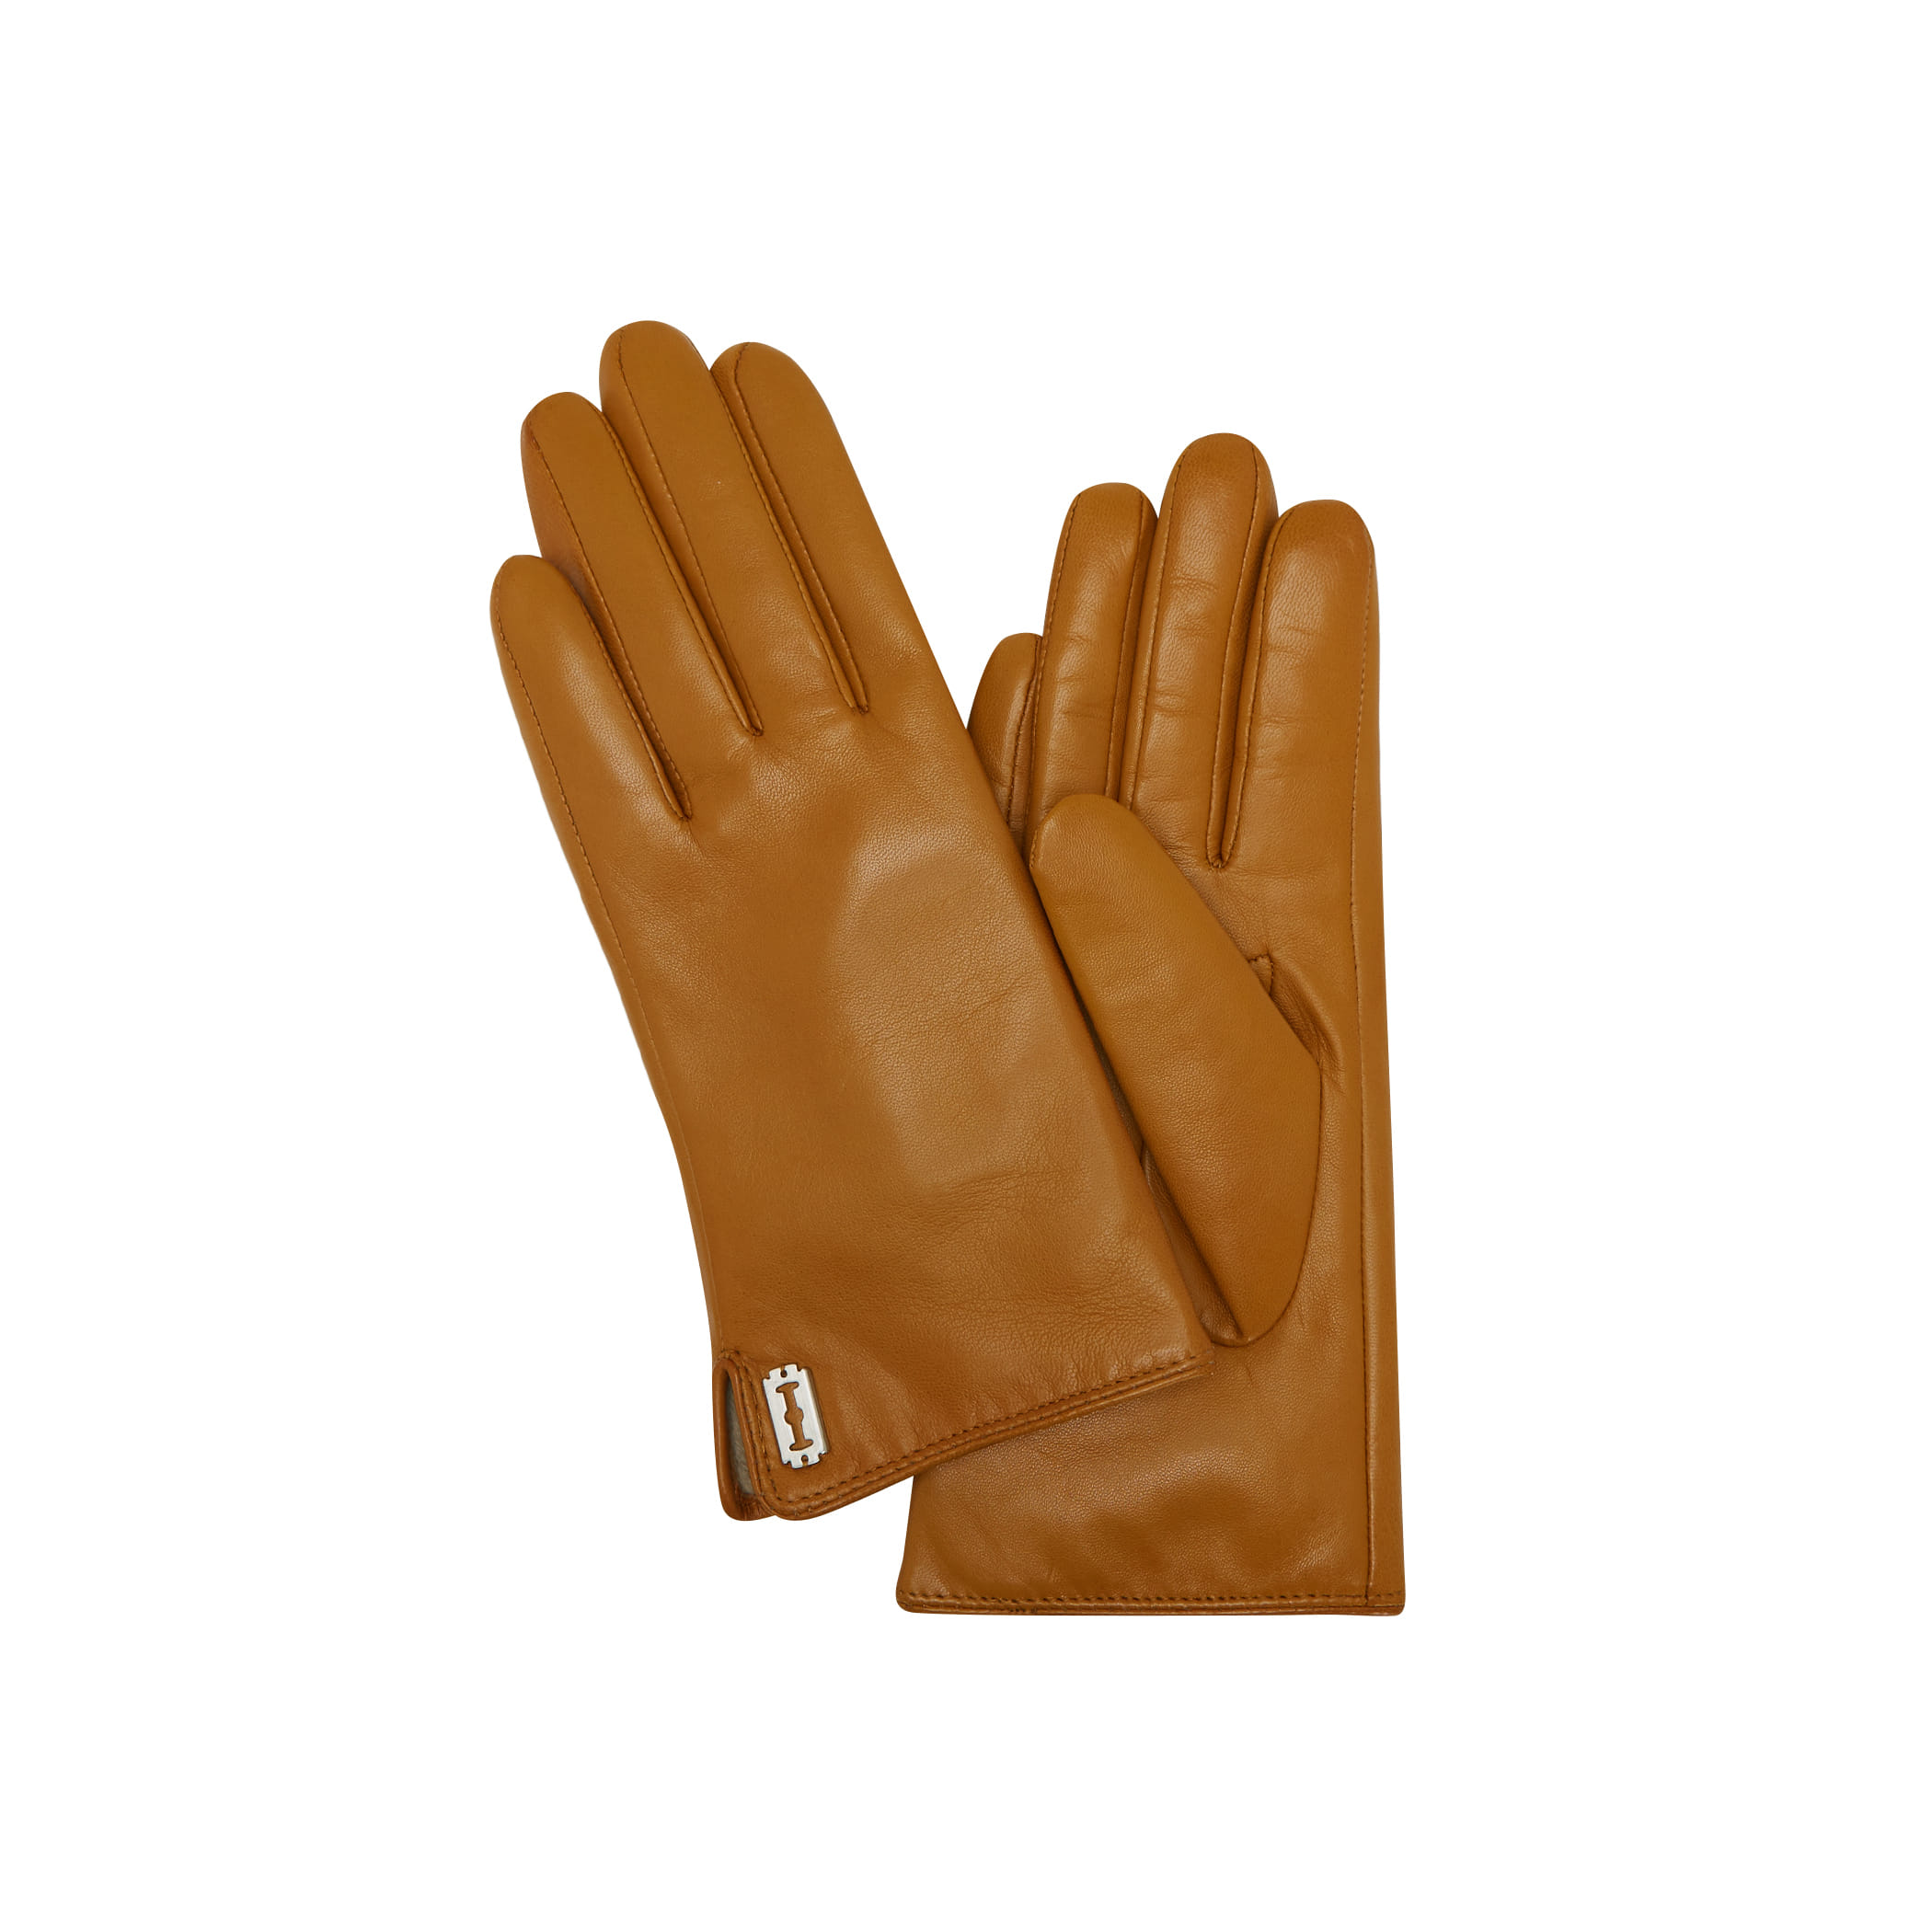 Toque Leather Gloves (토크 레더 장갑) Camel